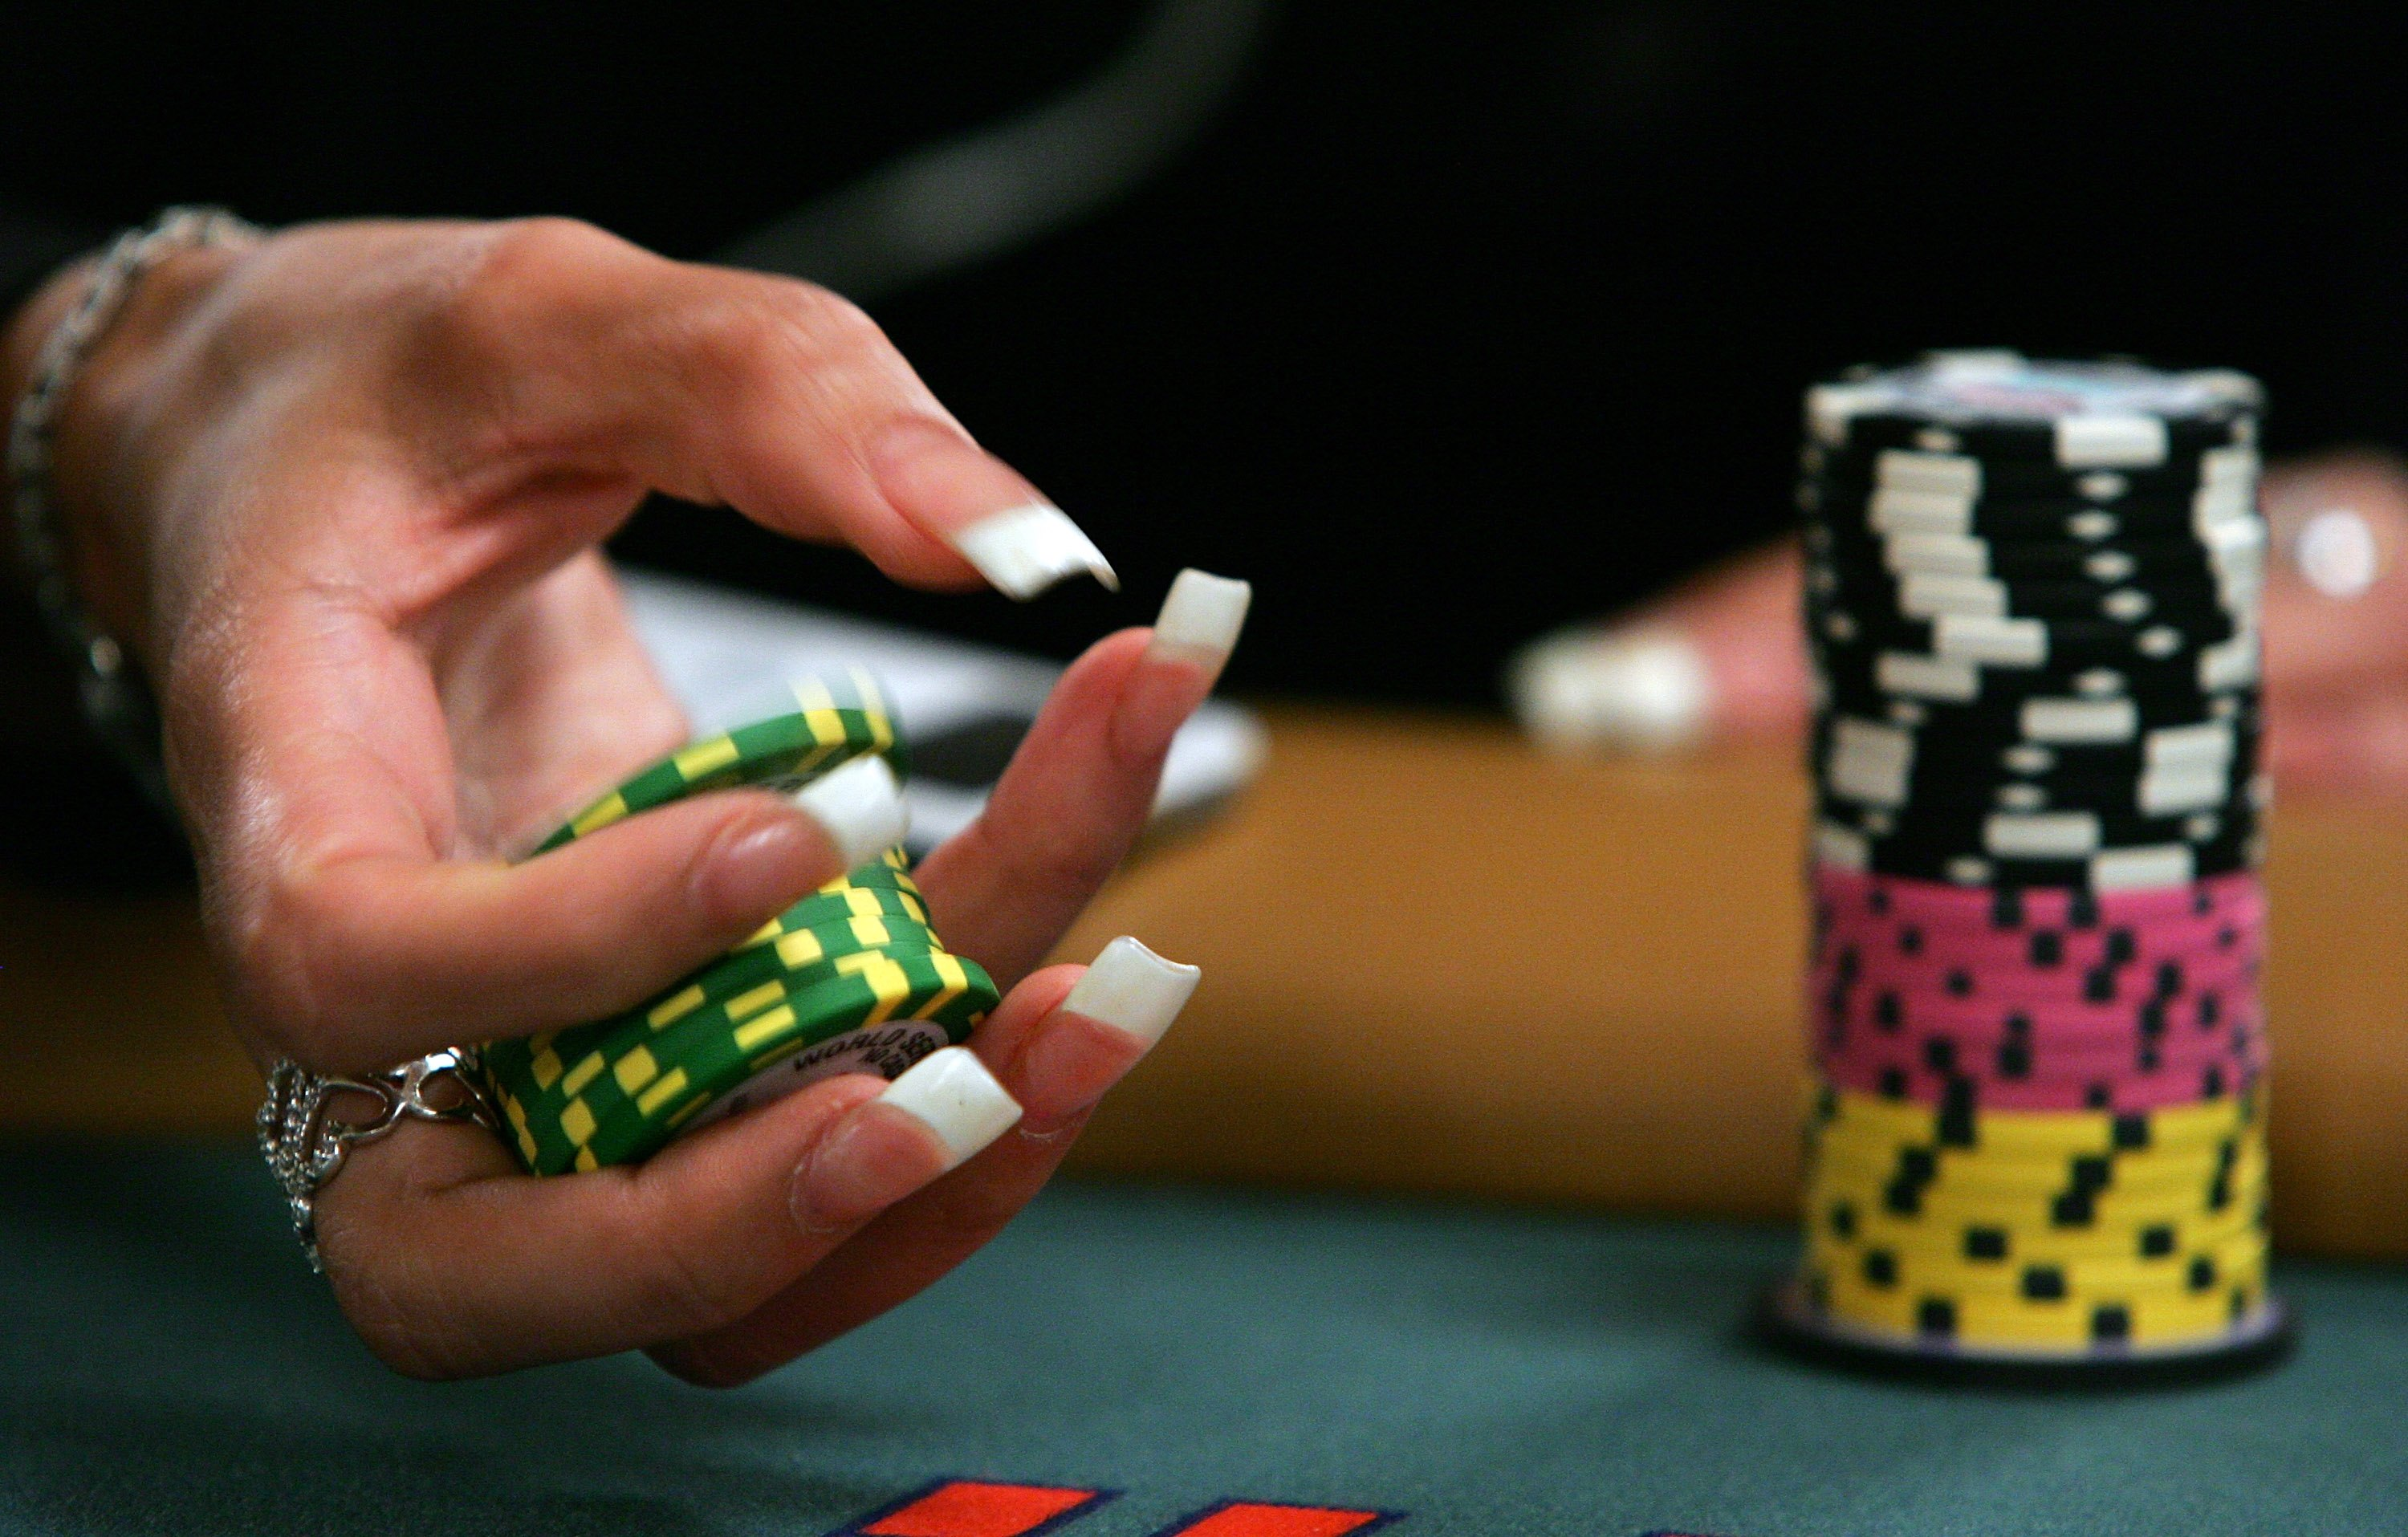 LAS VEGAS - JULY 30:  Poker player Liz Lieu plays with her chips as she competes on the third day of the first round of the World Series of Poker no-limit Texas Hold 'em main event at the Rio Hotel & Casino July 30, 2006 in Las Vegas, Nevada. More than 8,